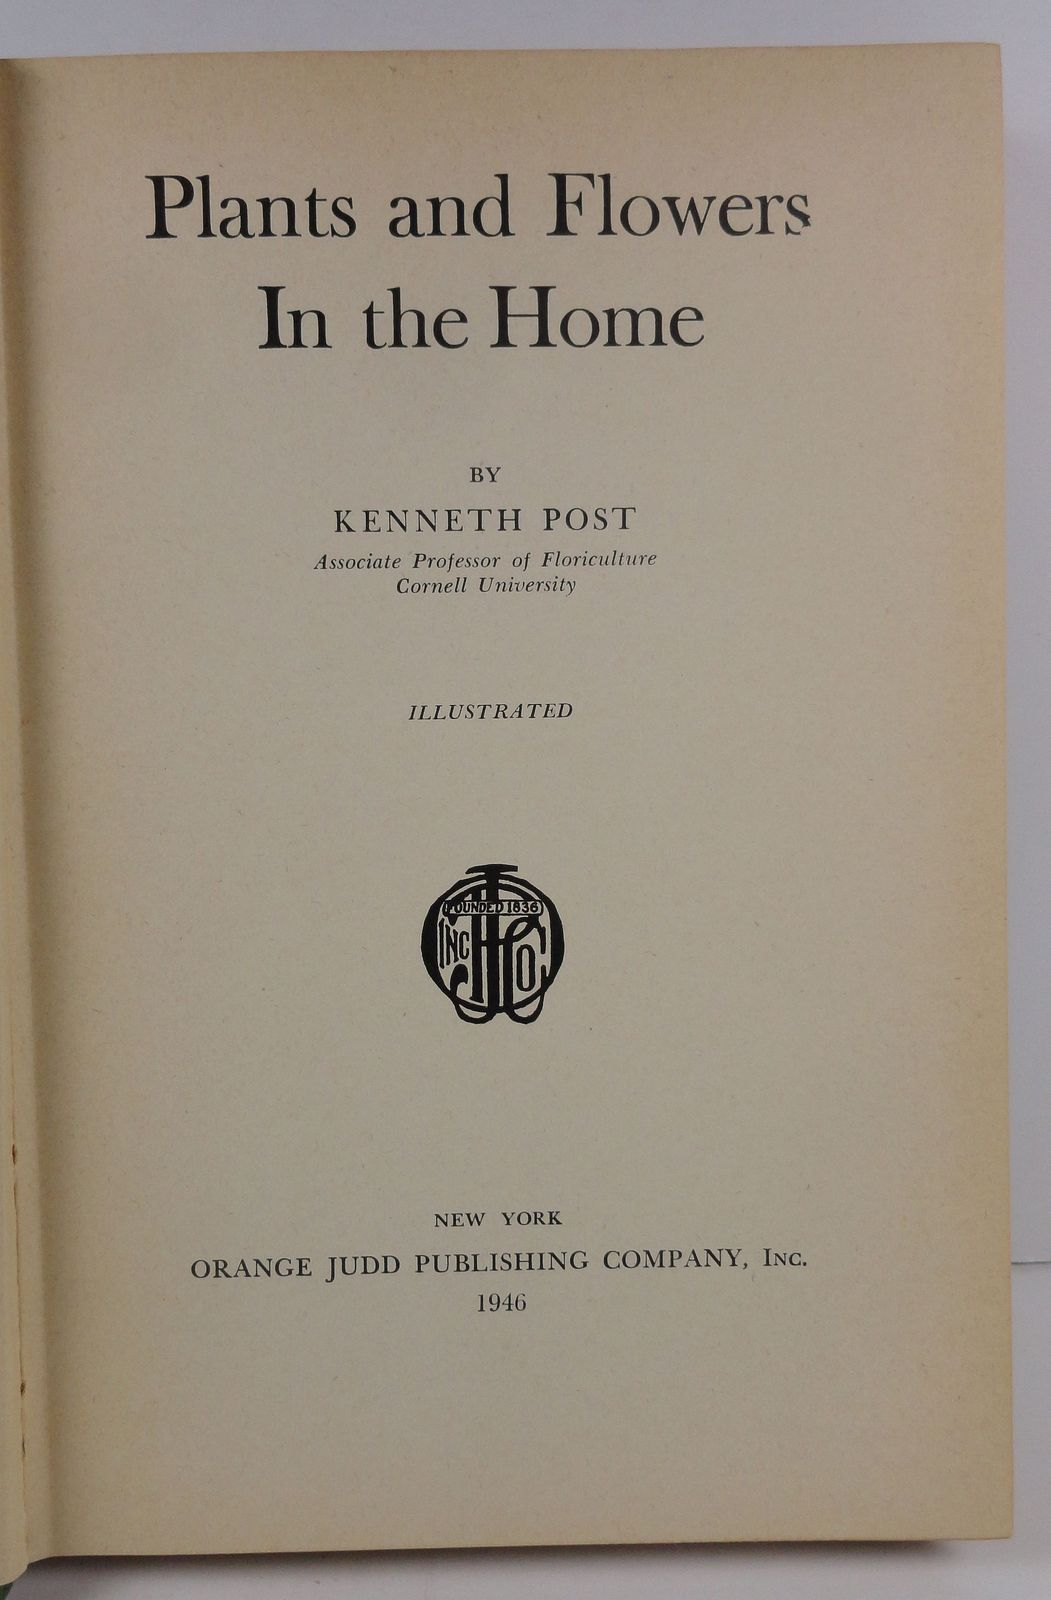 Plants and Flowers in the Home by Kenneth Post 1946